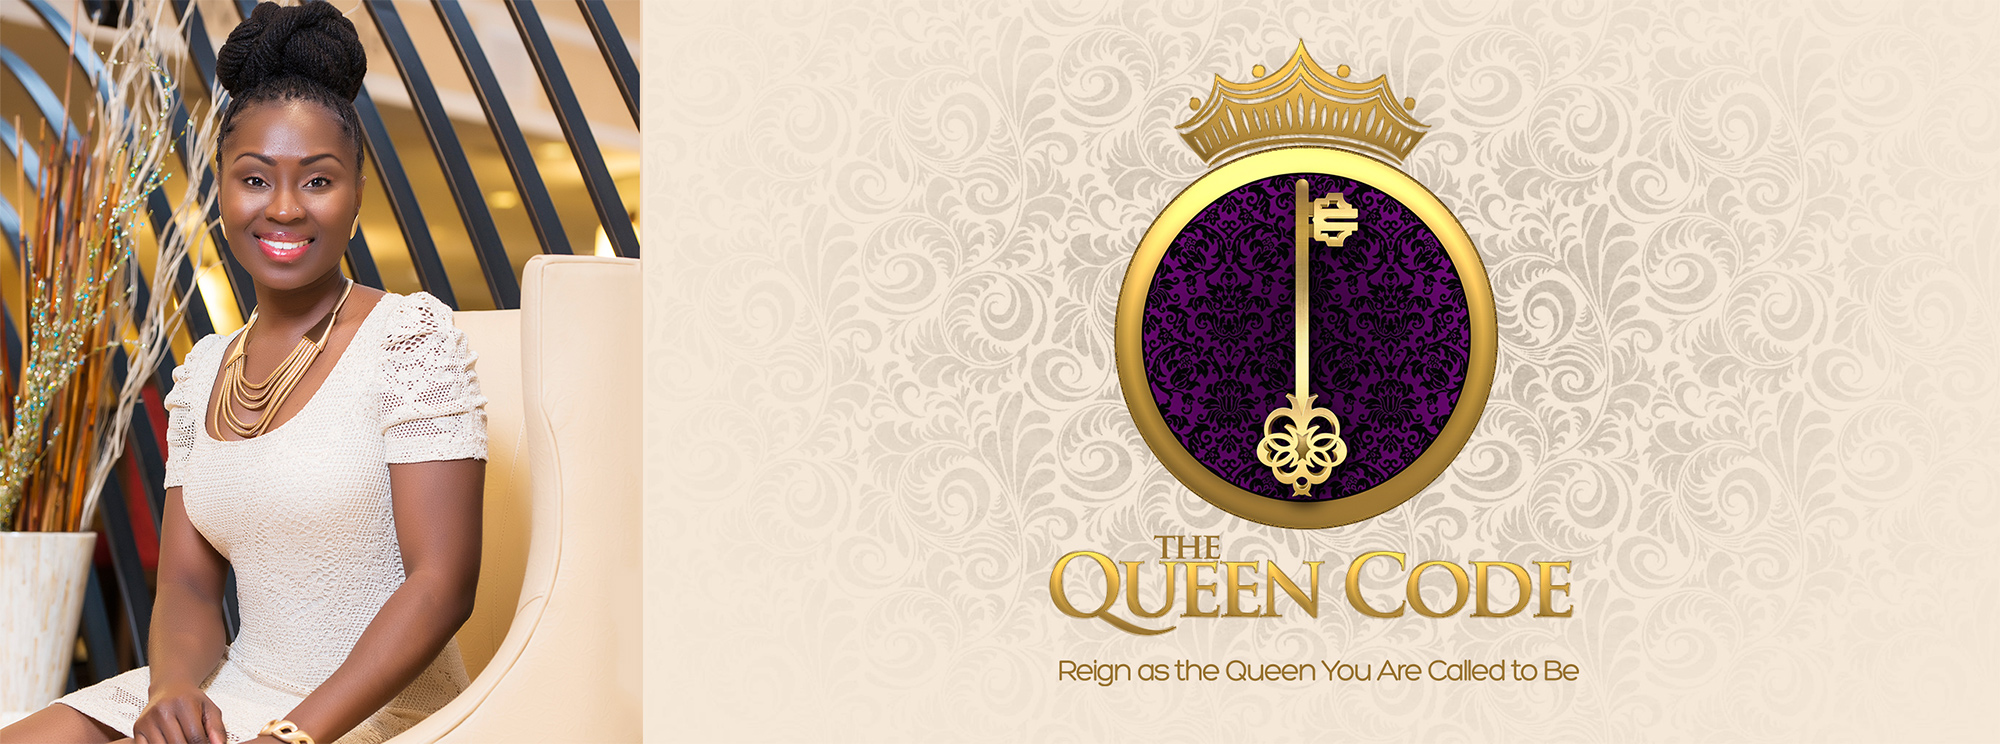 the-queen-code-main-header